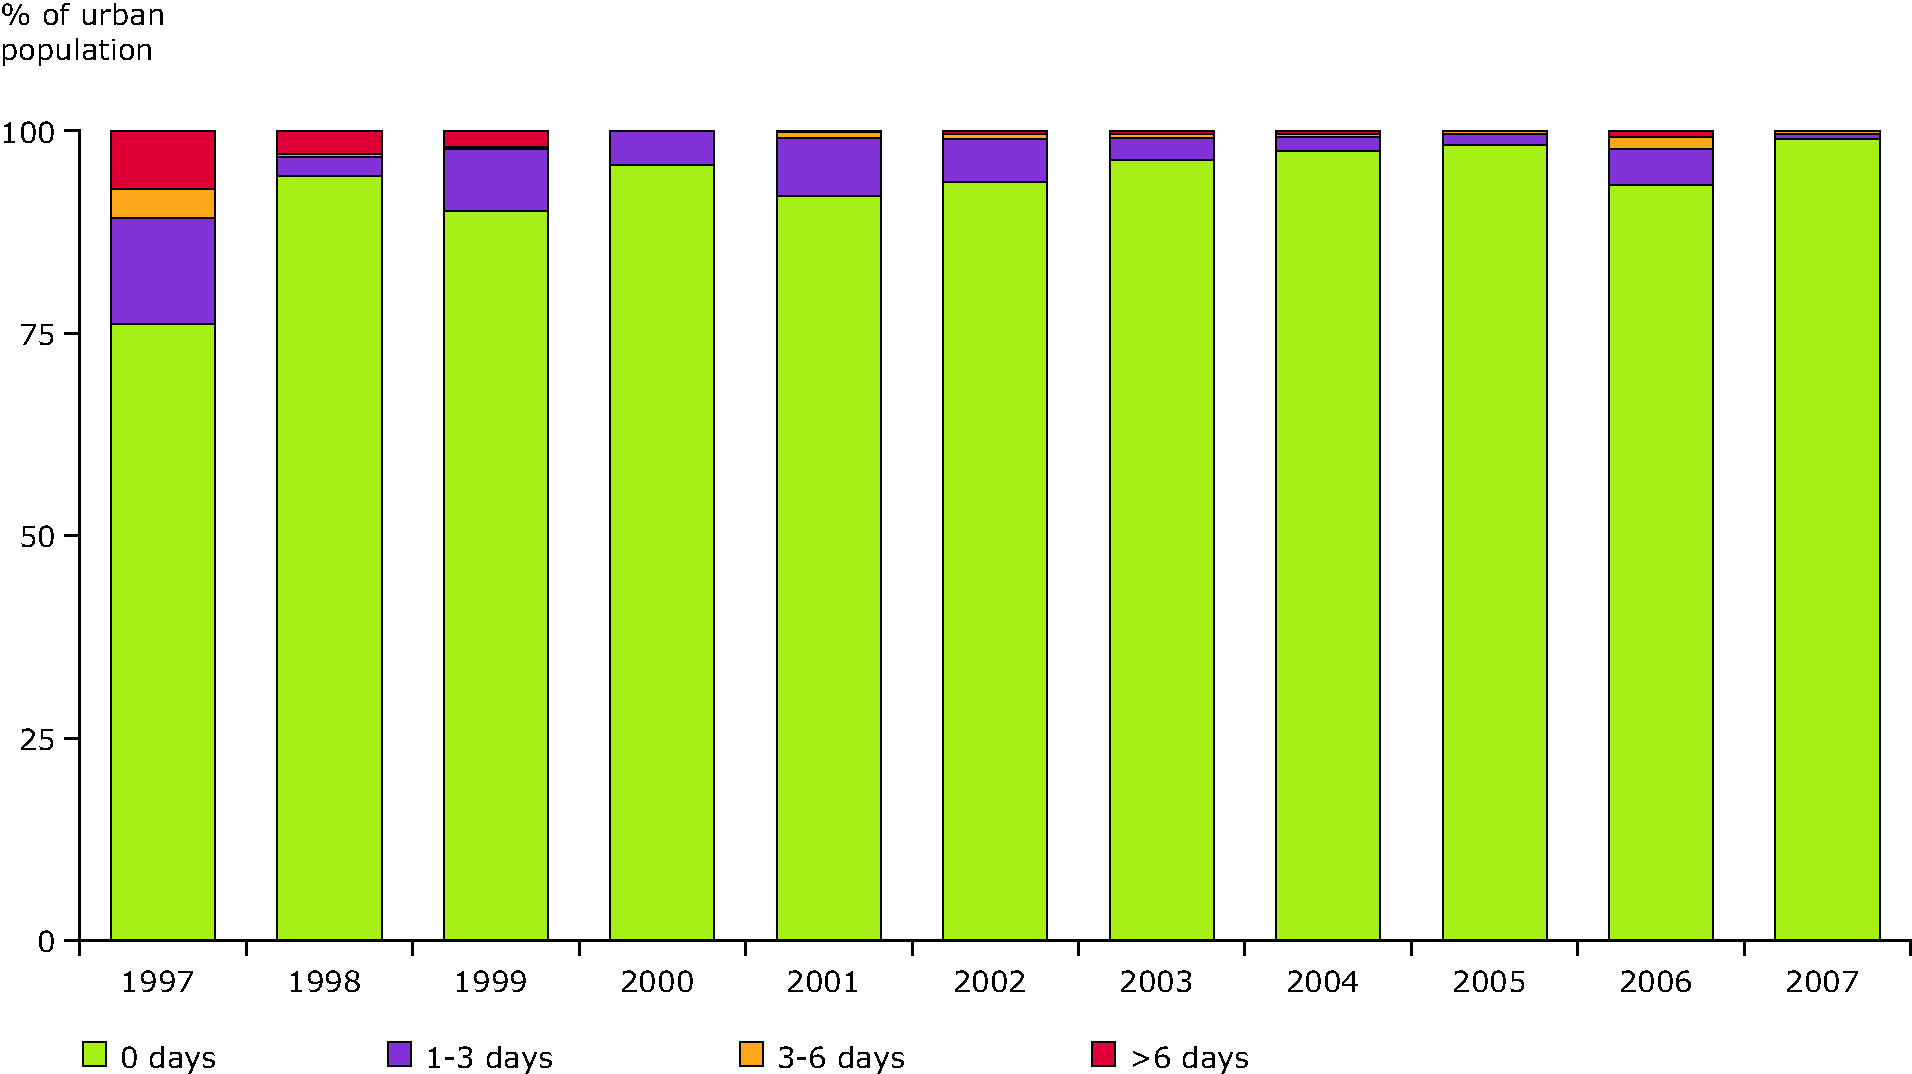 Percentage of population resident in urban areas potentially exposed to SO2 concentration levels exceeding the daily limit value, EEA member countries, 1997-2007